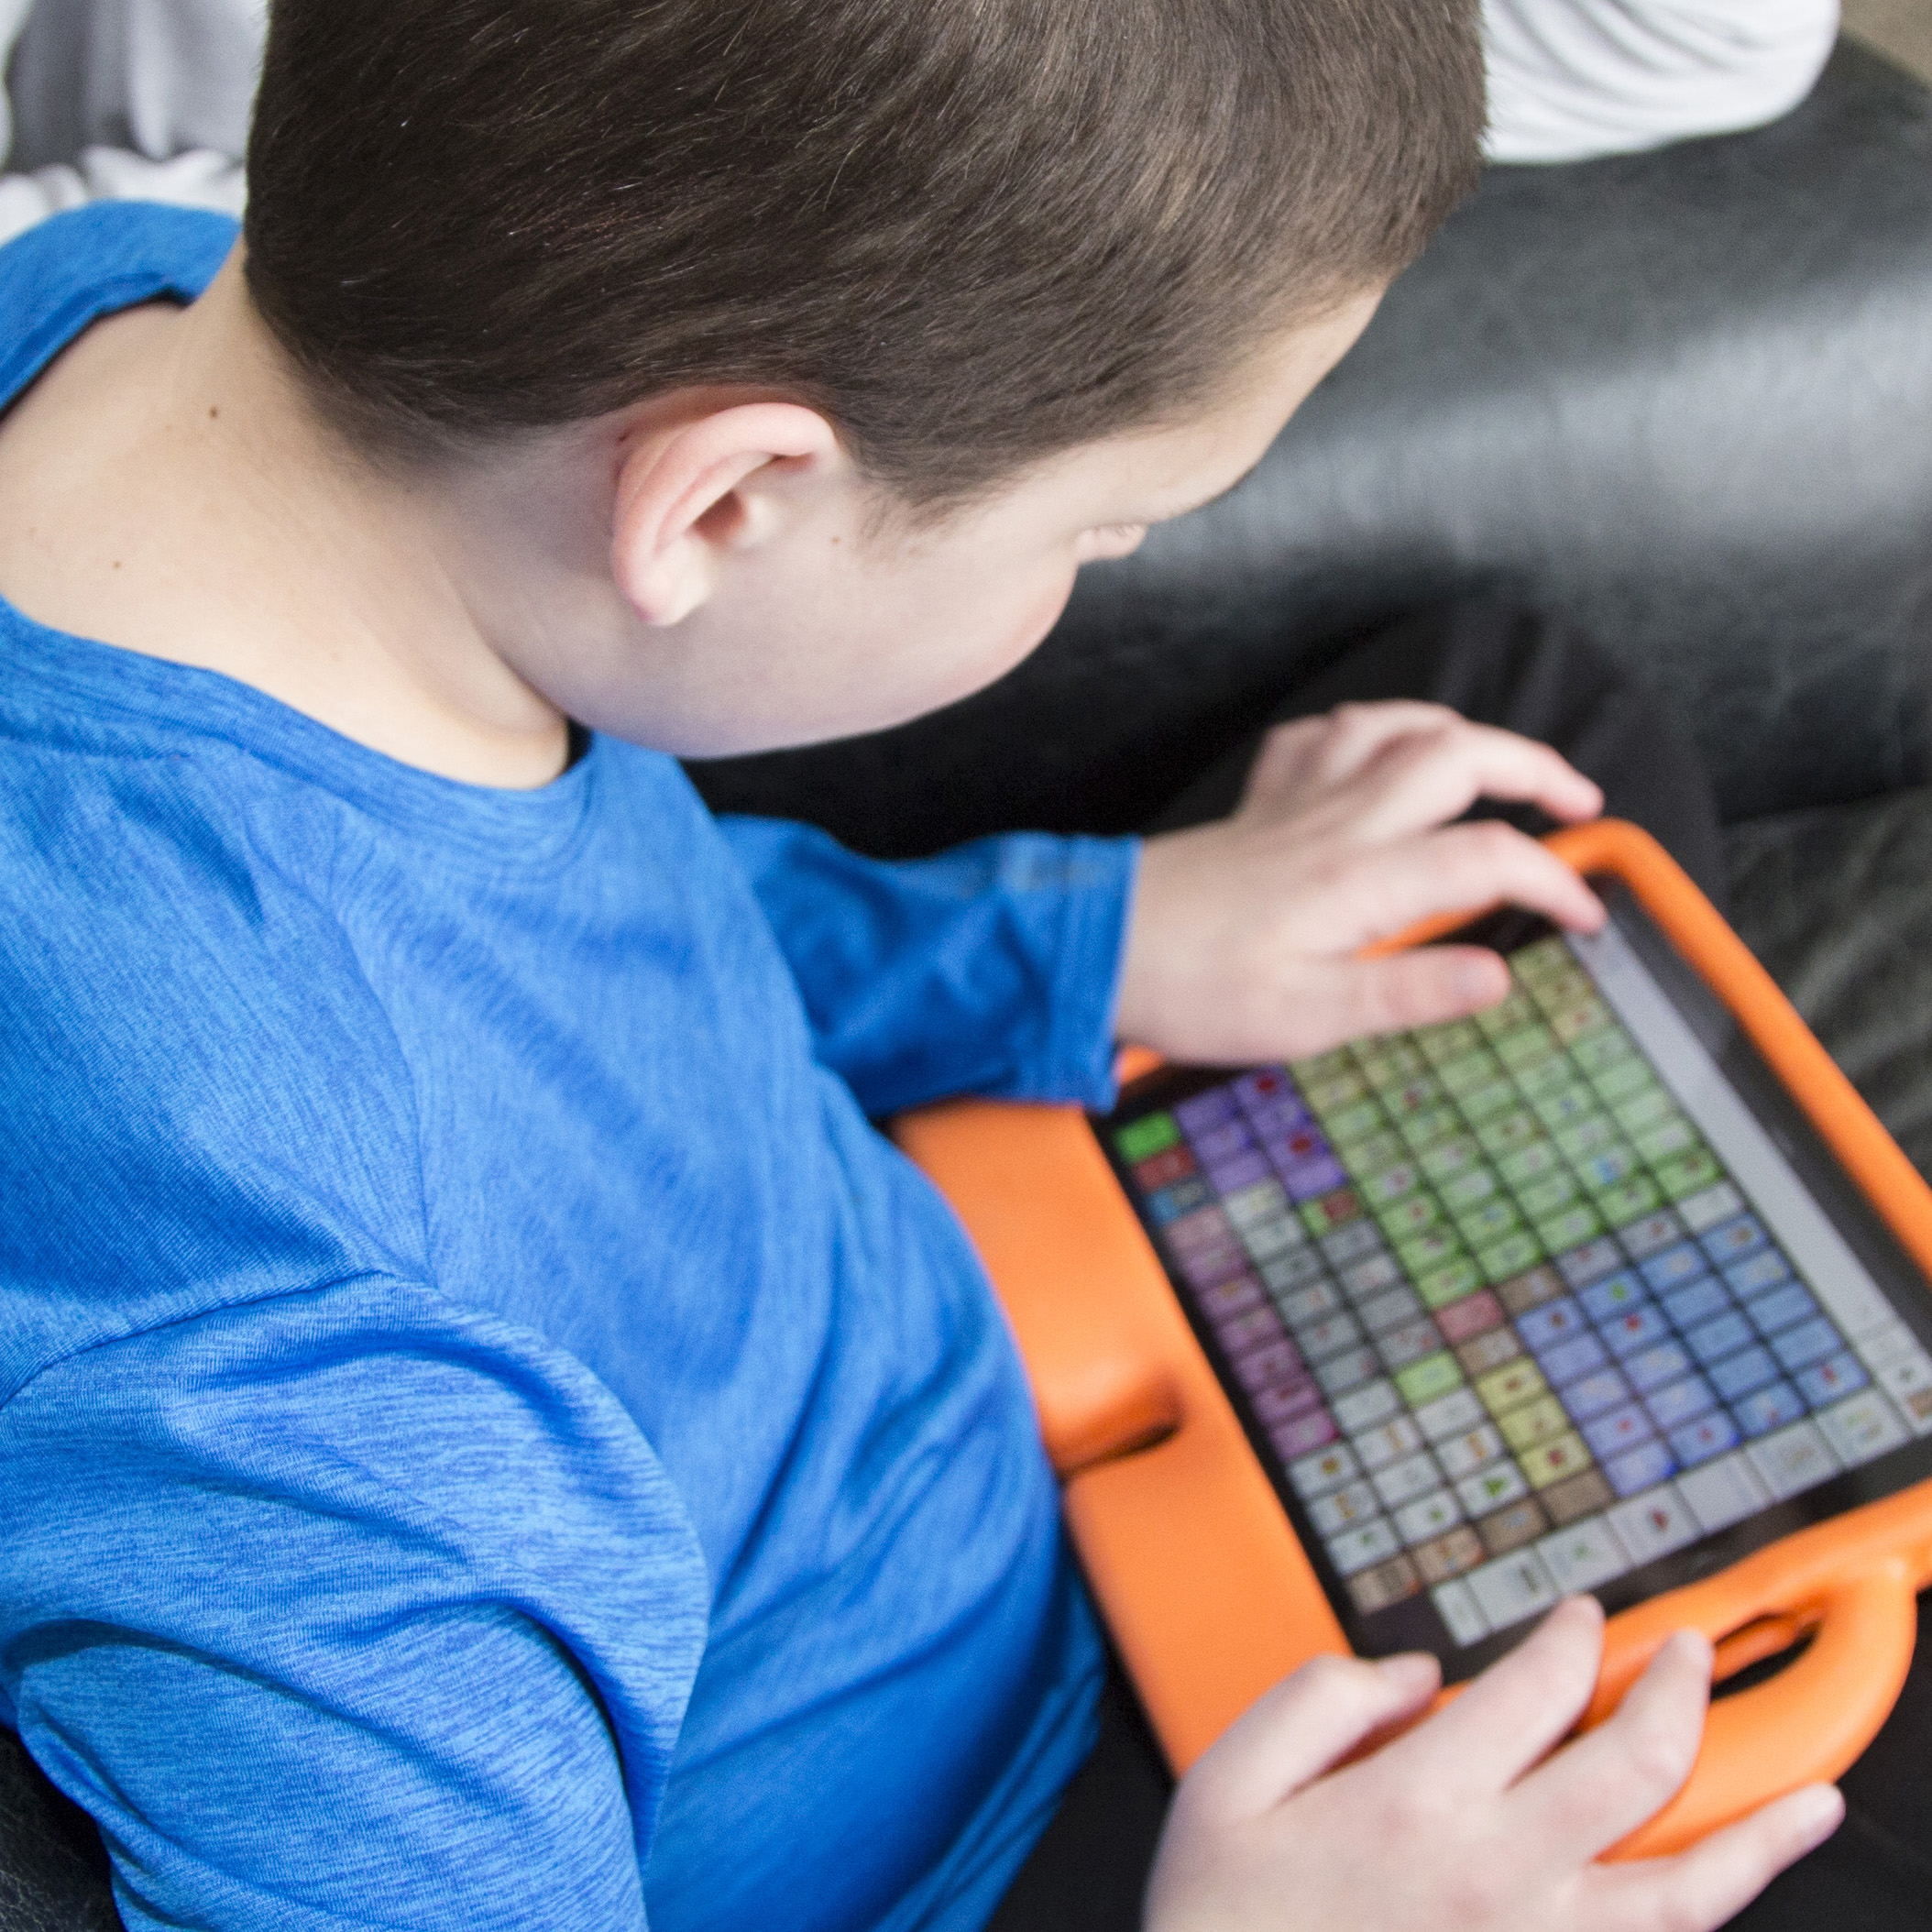 A boy uses an iPad communciation device